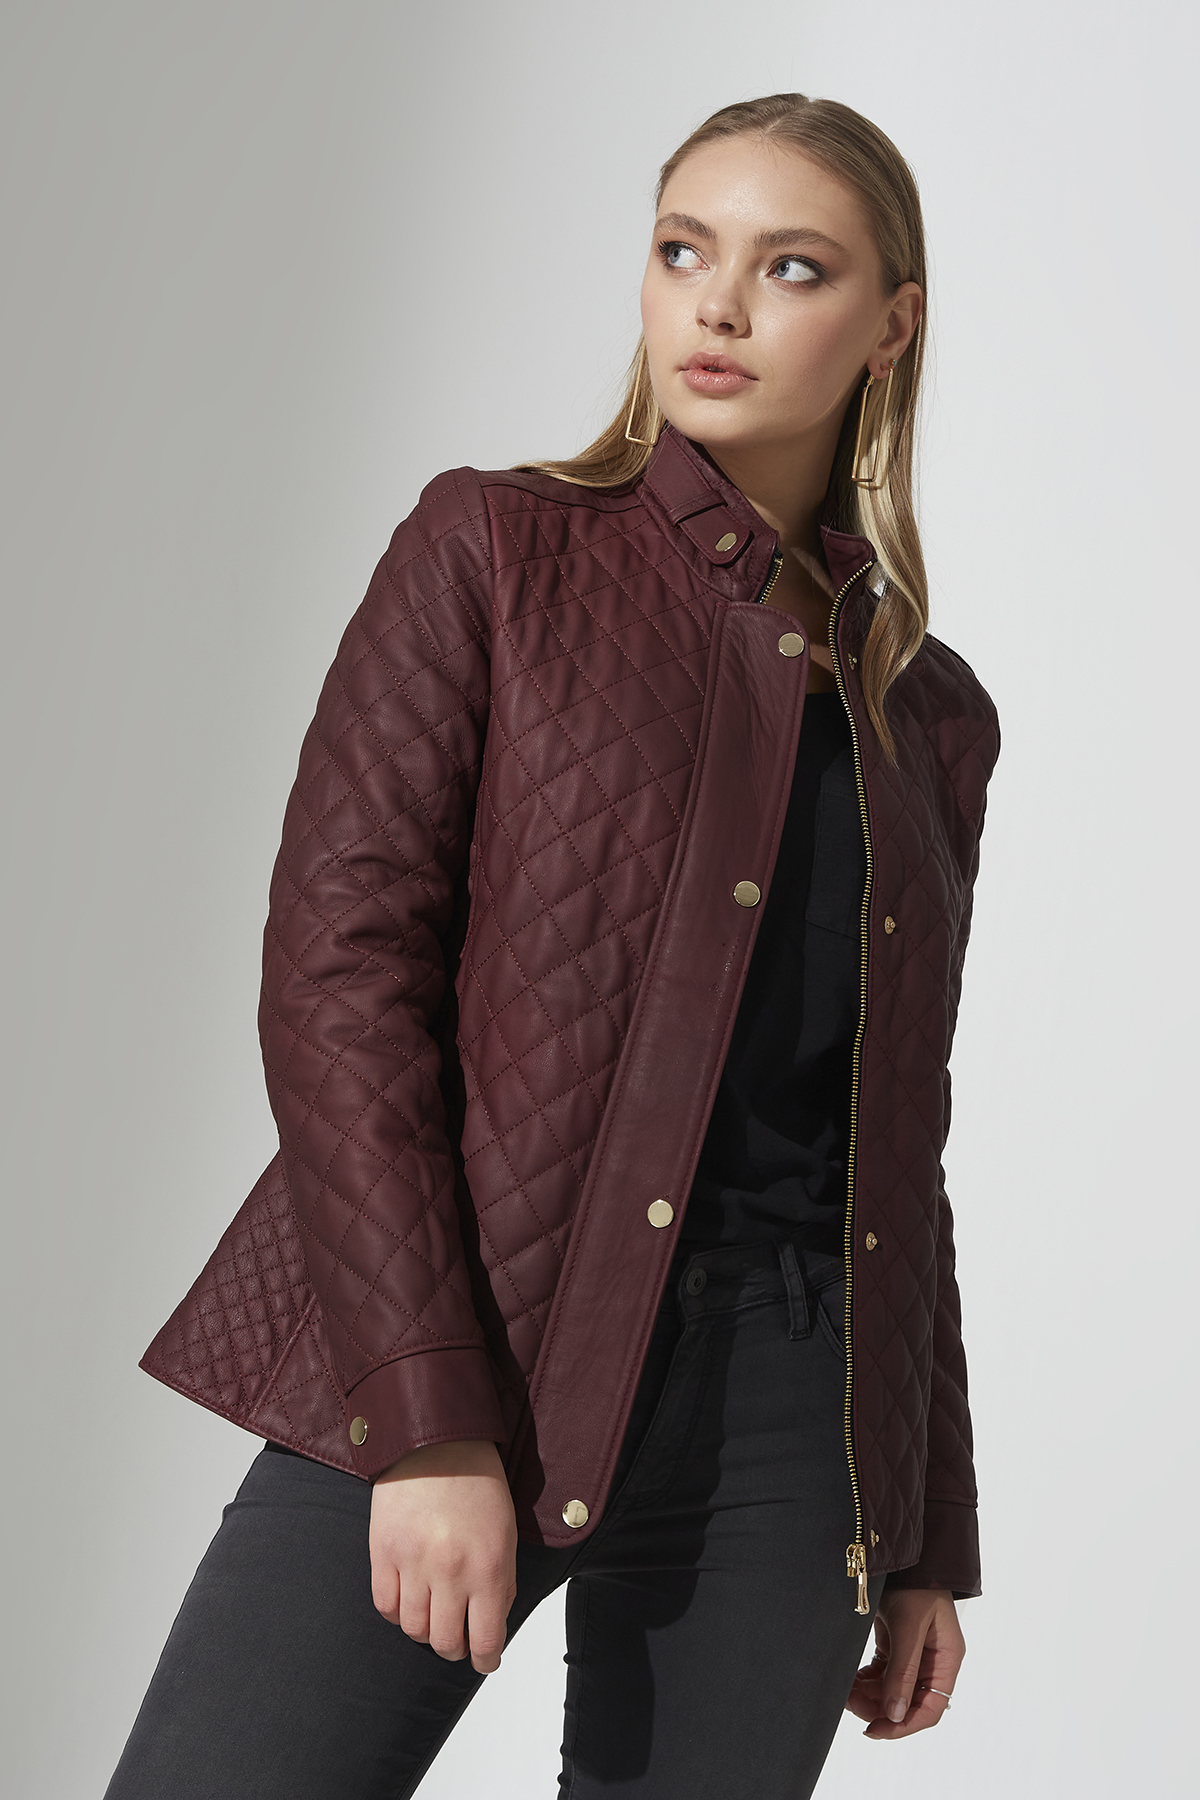 IPAWDUNNA Bordeaux Leather Jacket